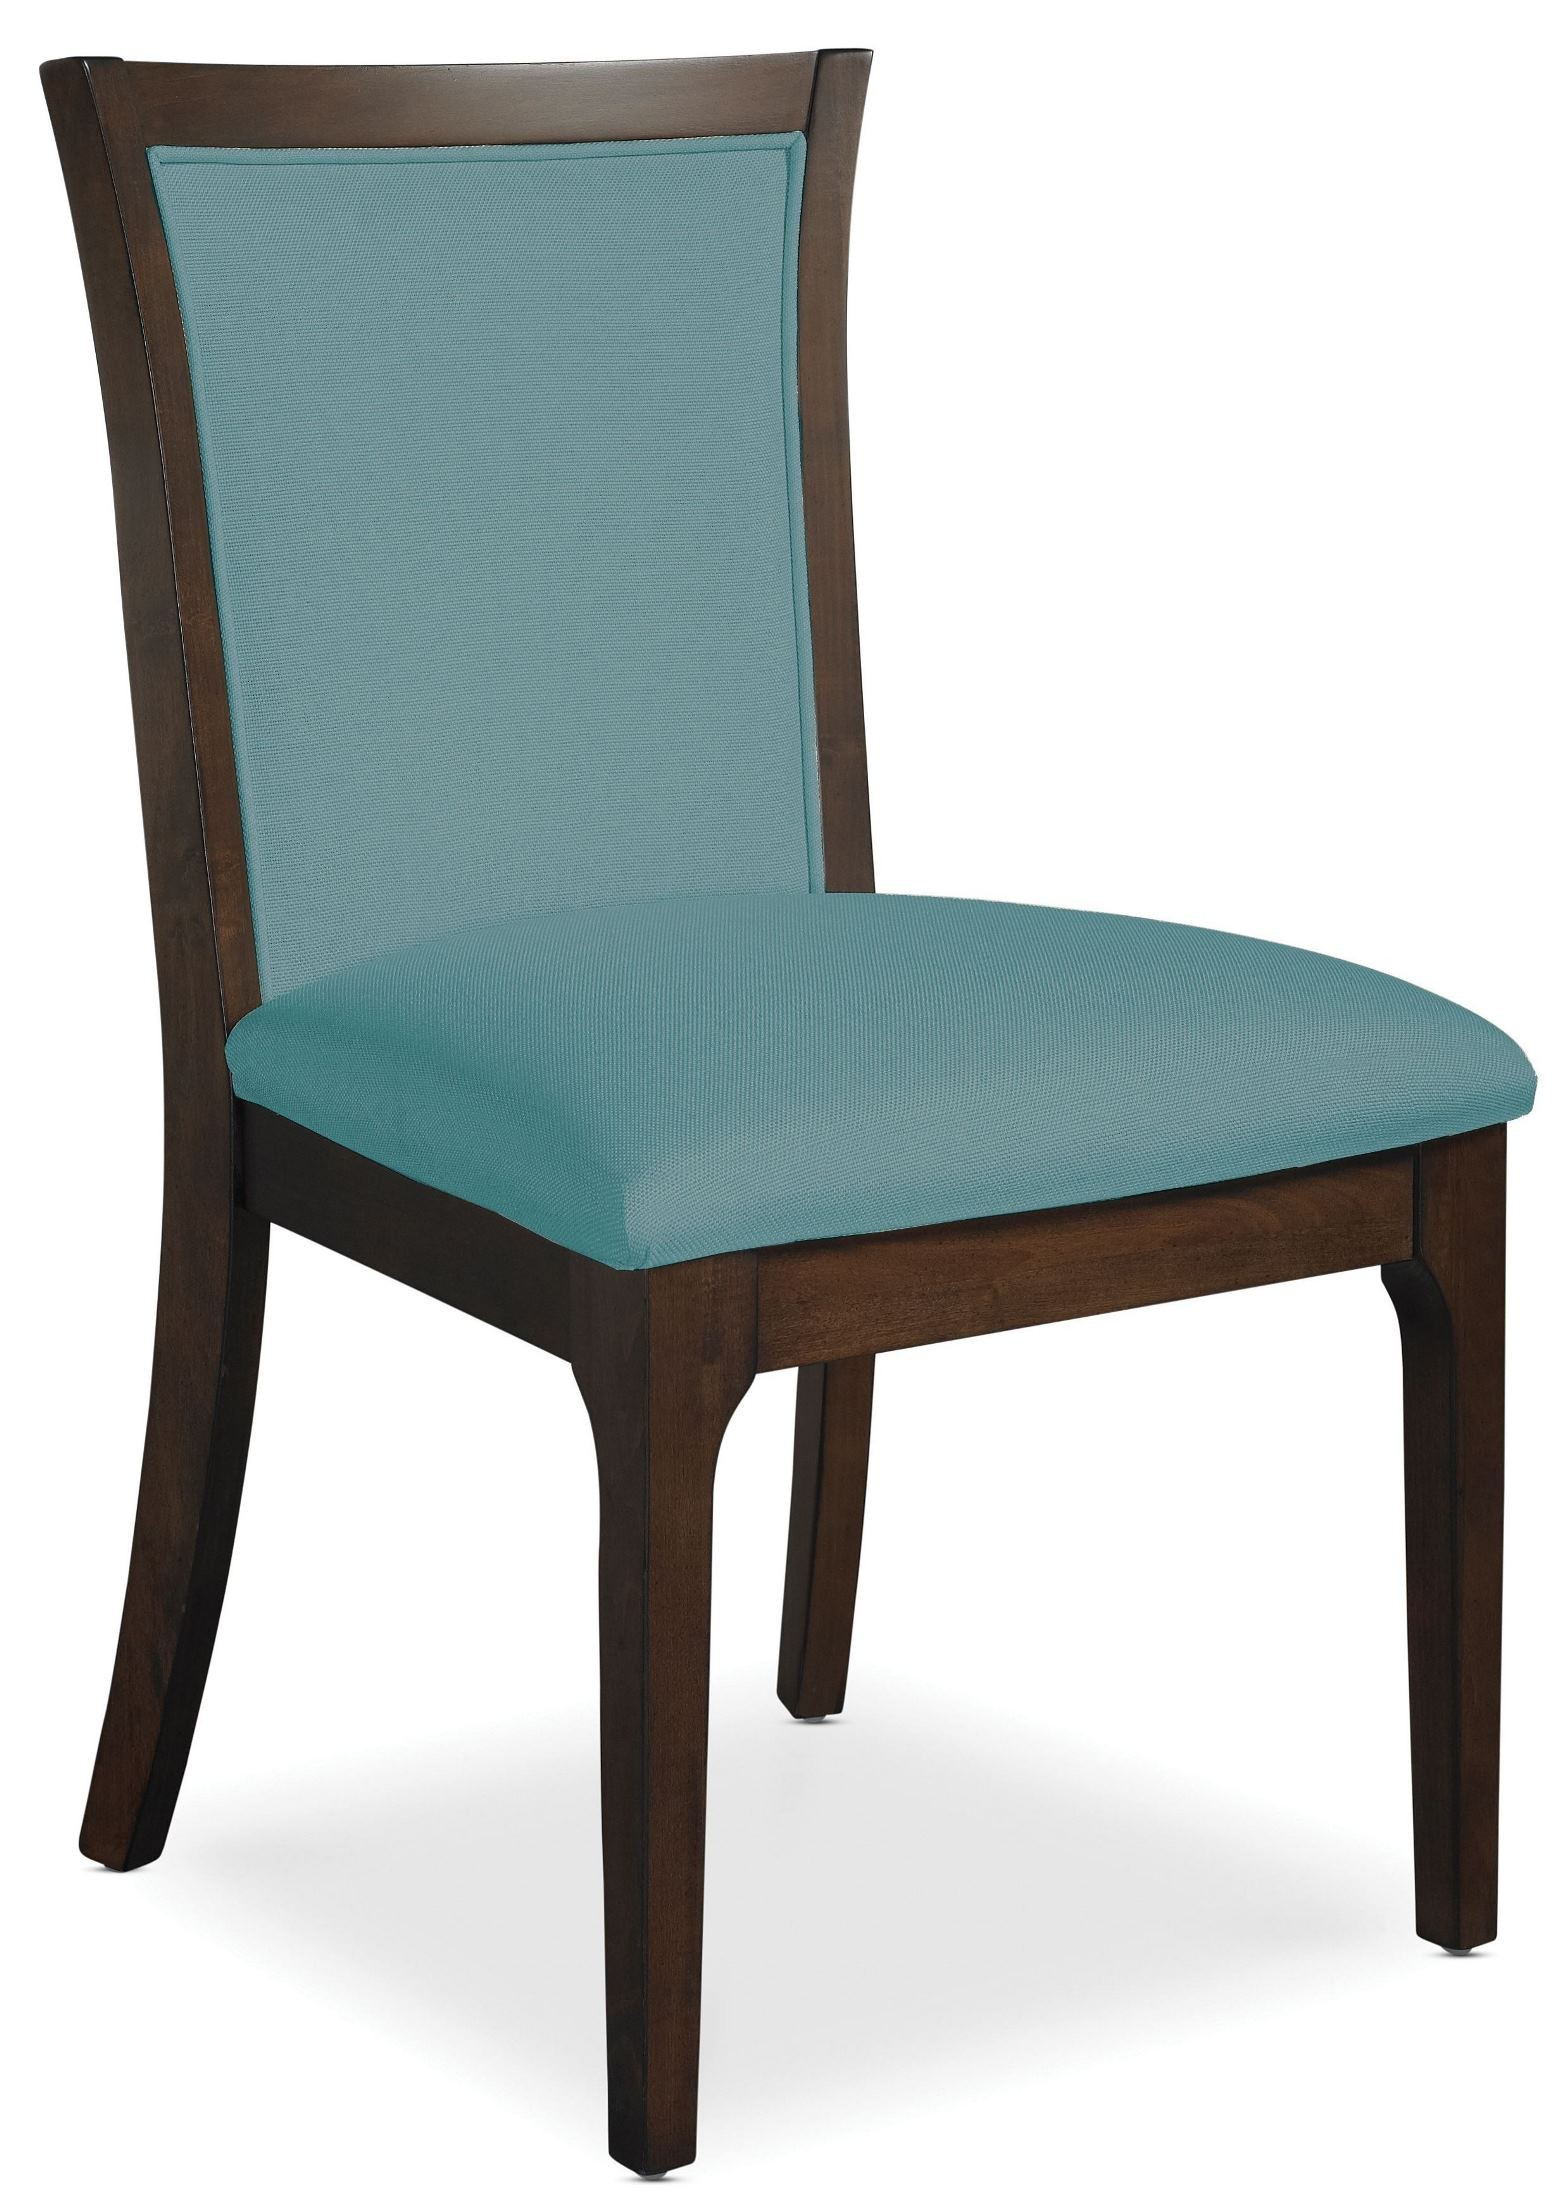 Improv in b clear brown and maxi teal fabric side chair for Teal and brown chair